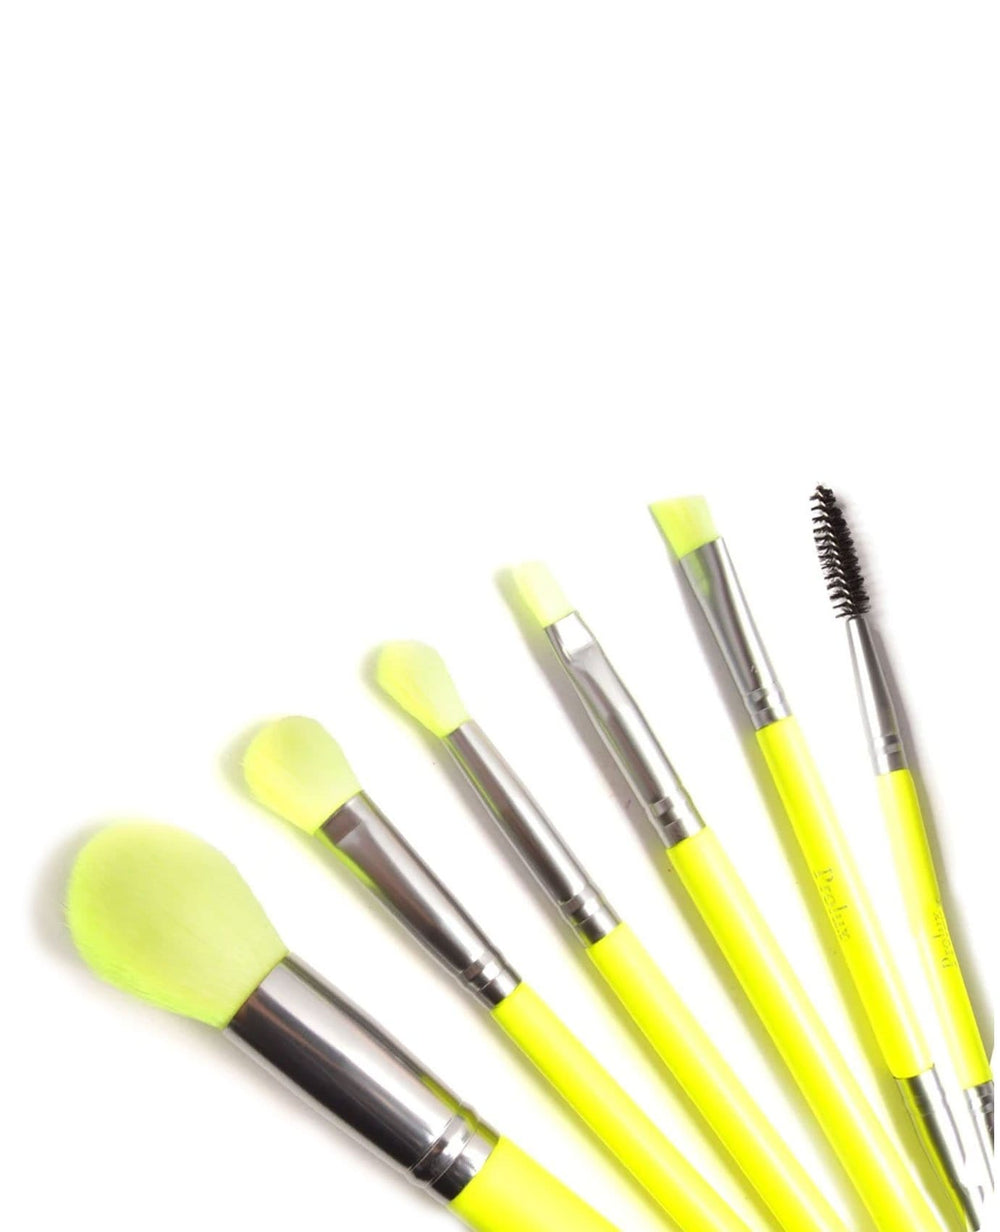 Prolux Deluxe Brush Set- Yellow Neon